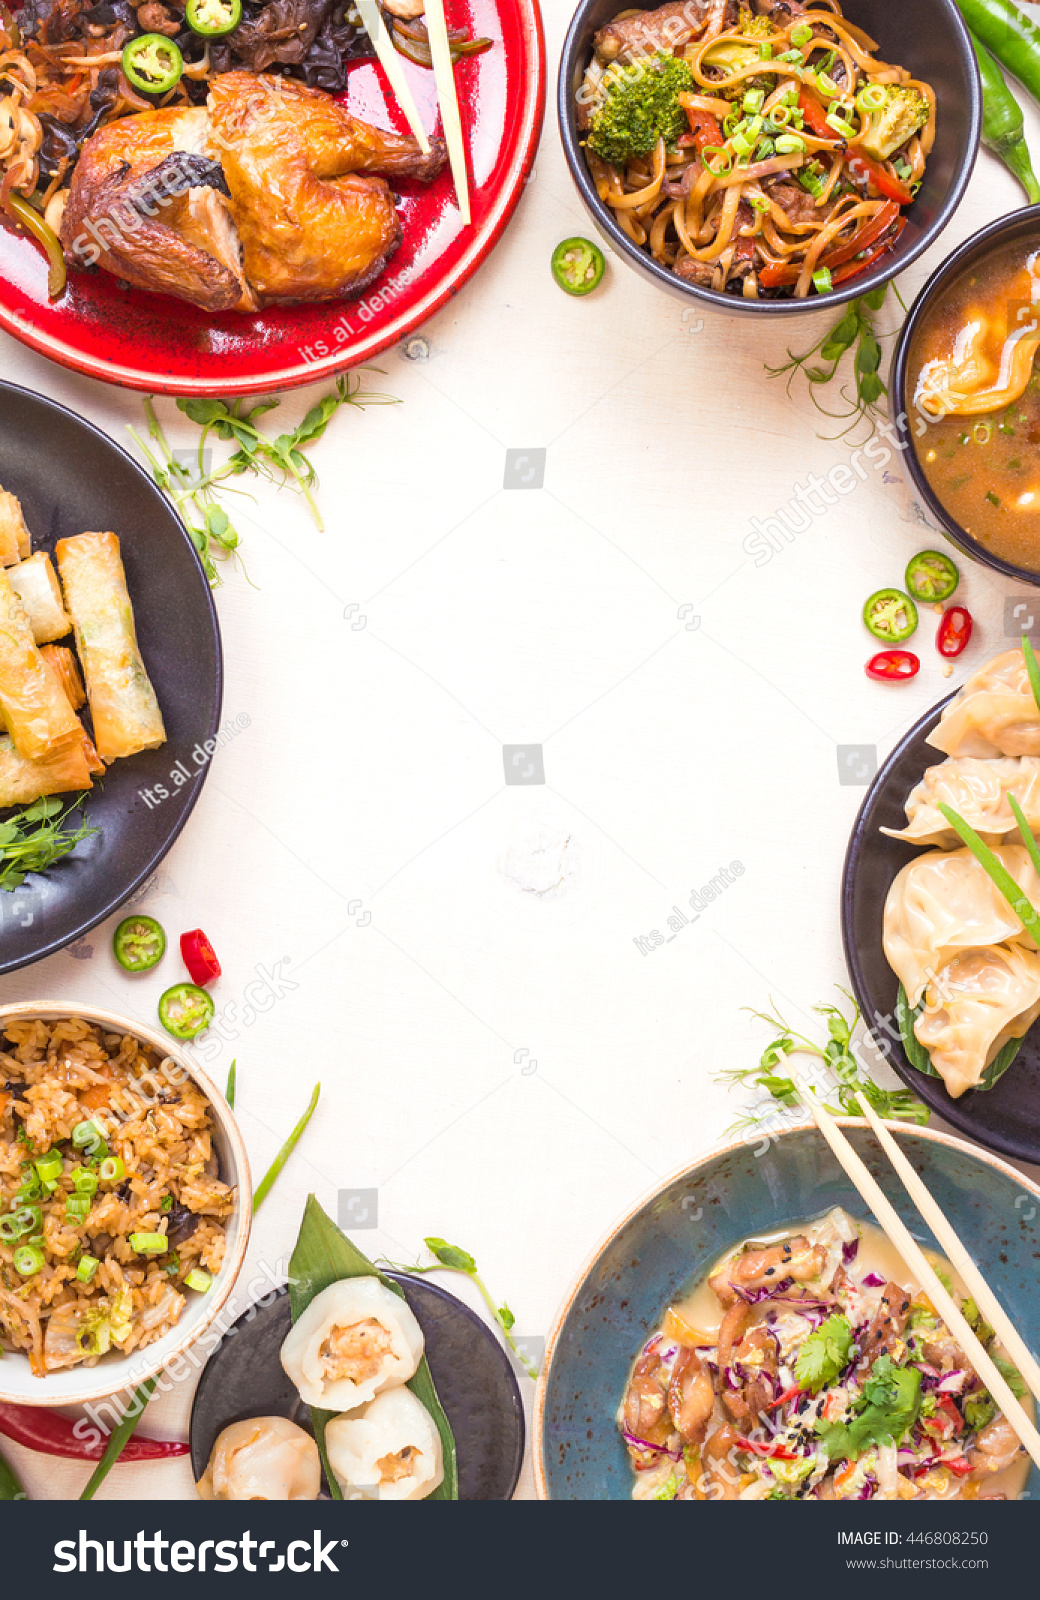 chinese food background - photo #42